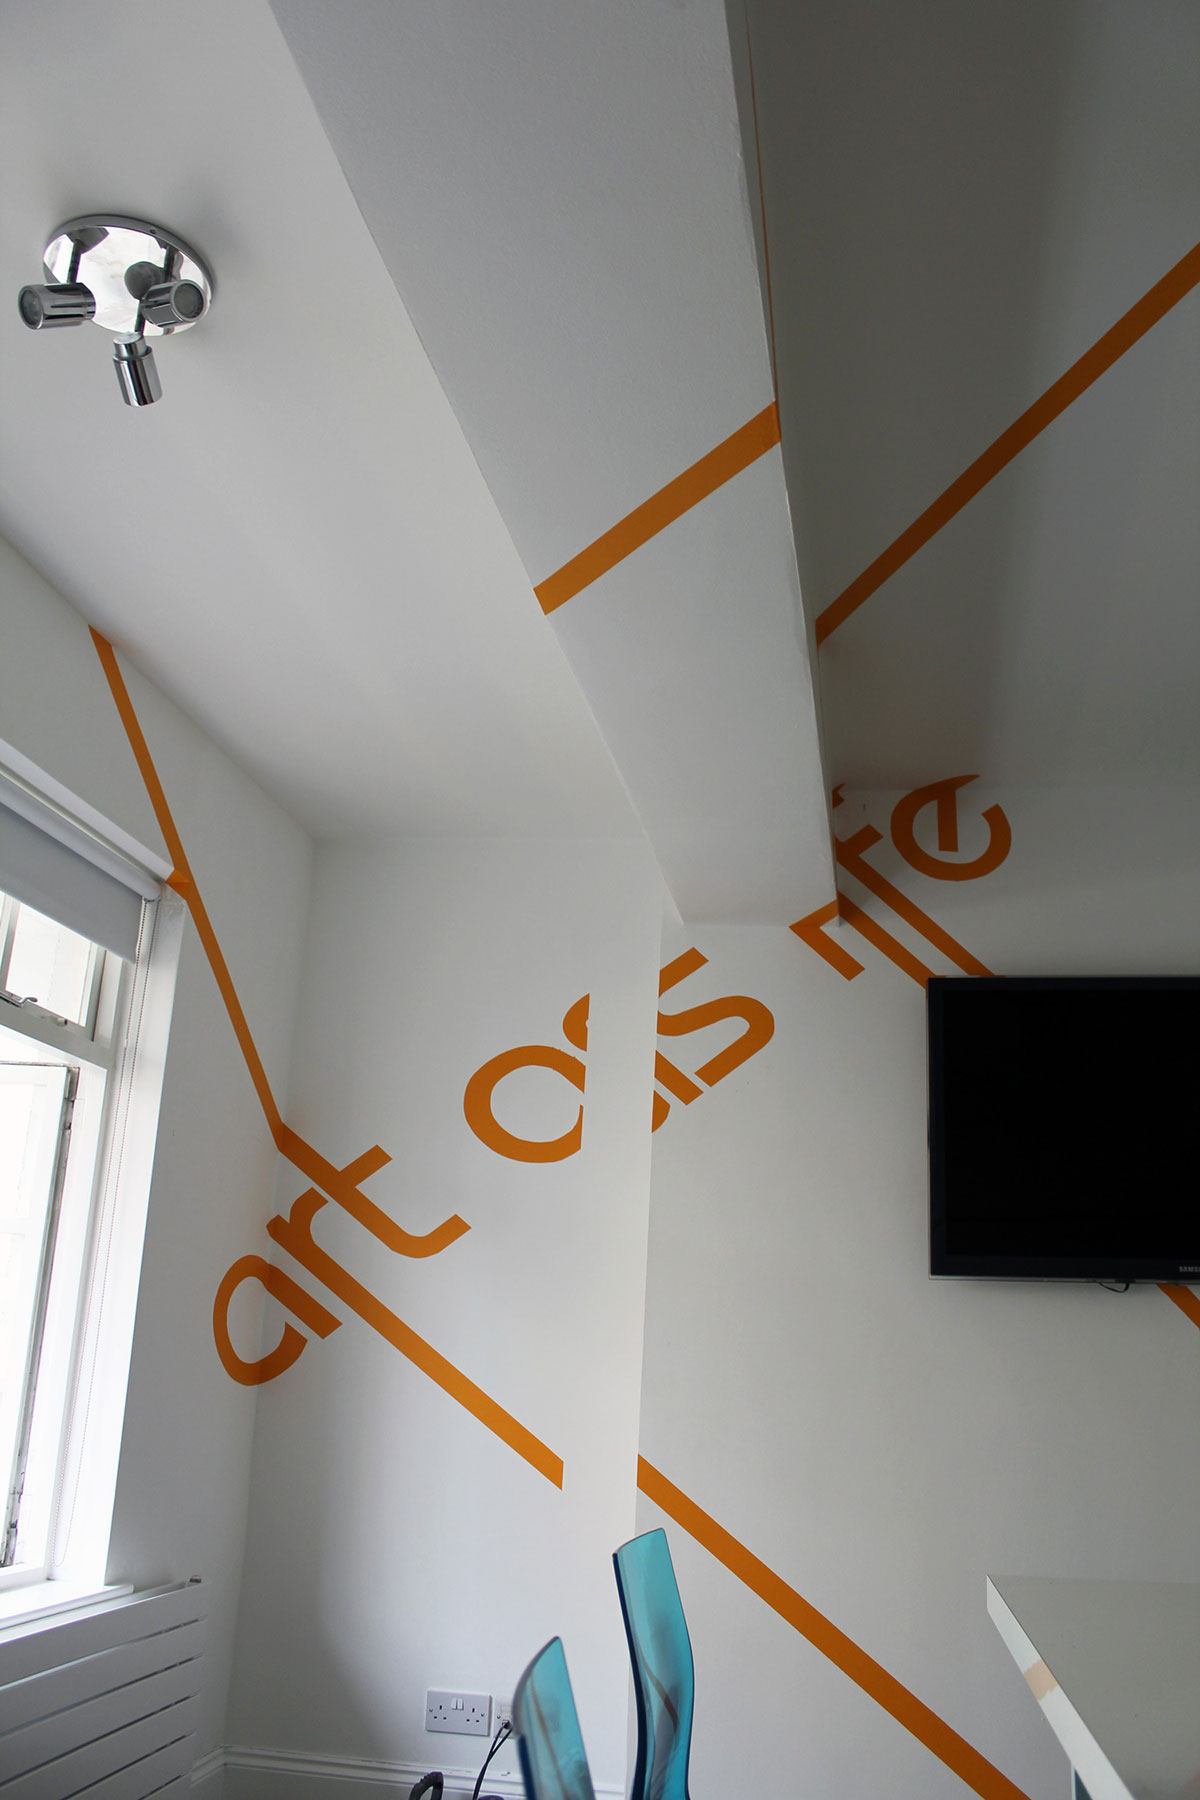 anamorphic graphics with writing on the wall